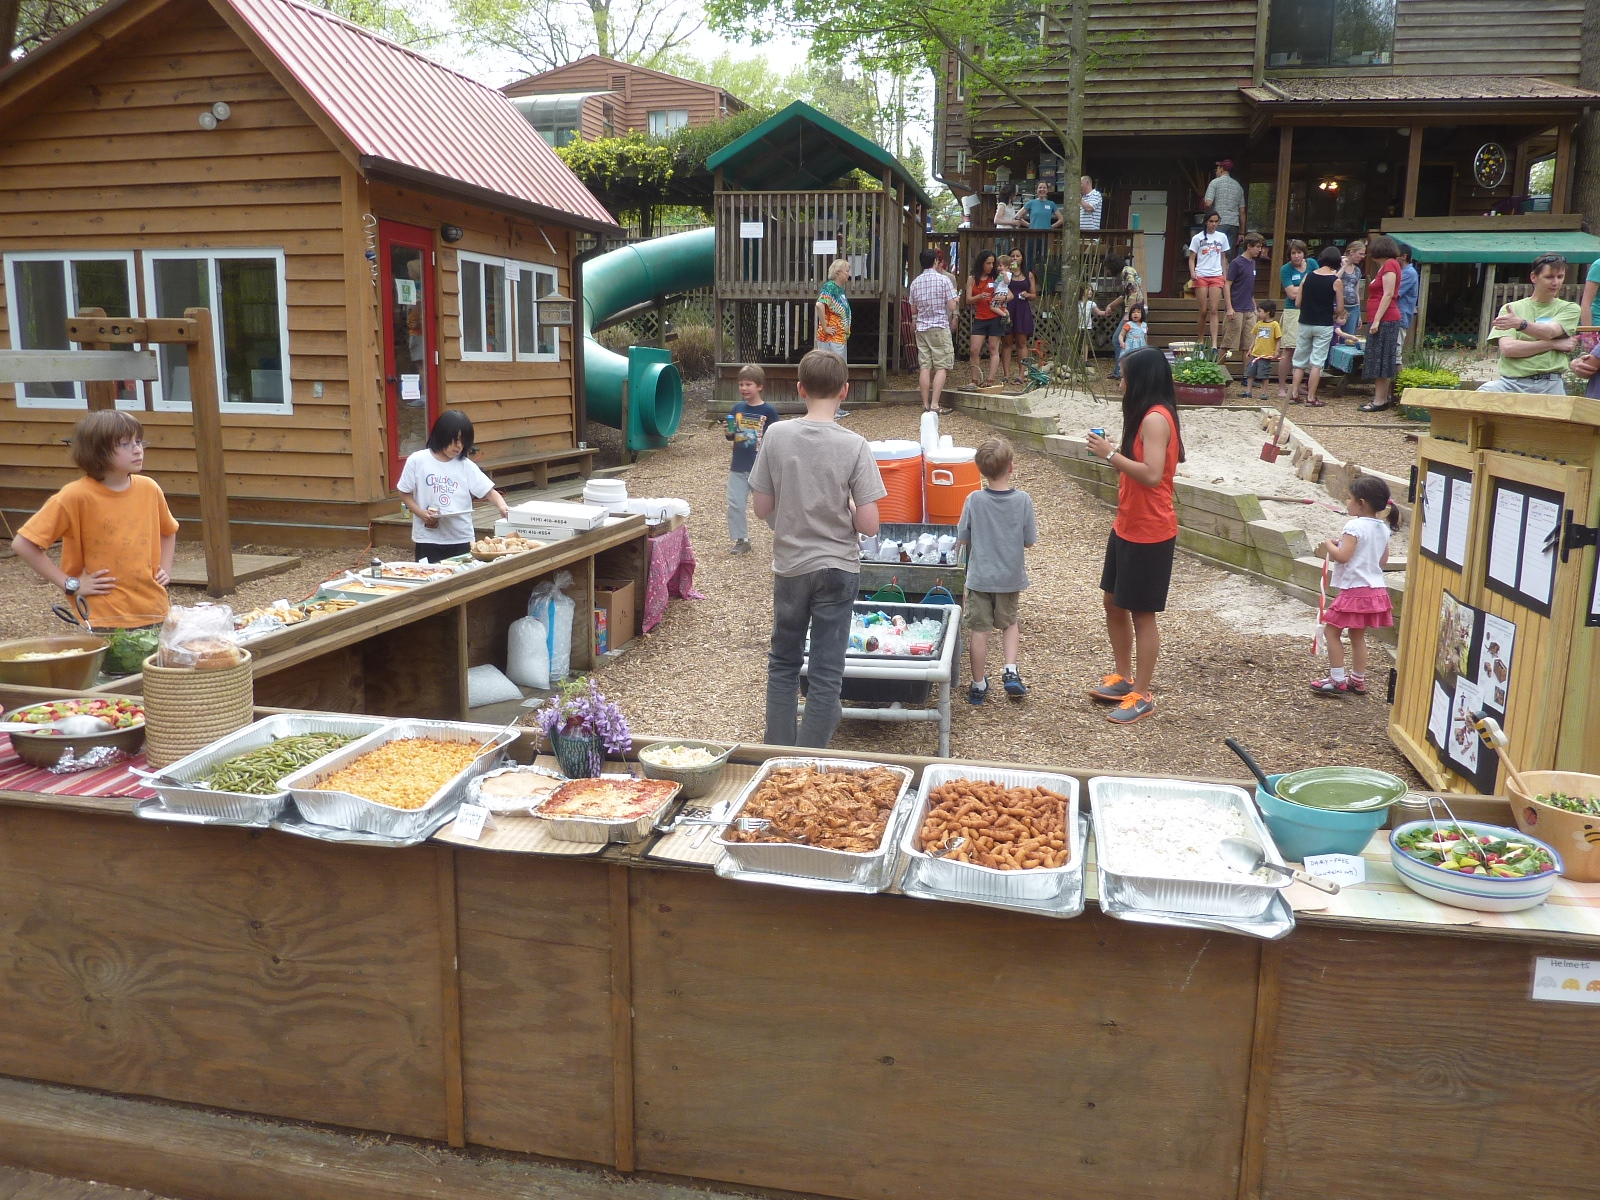 Families provided the delicious and abundant food